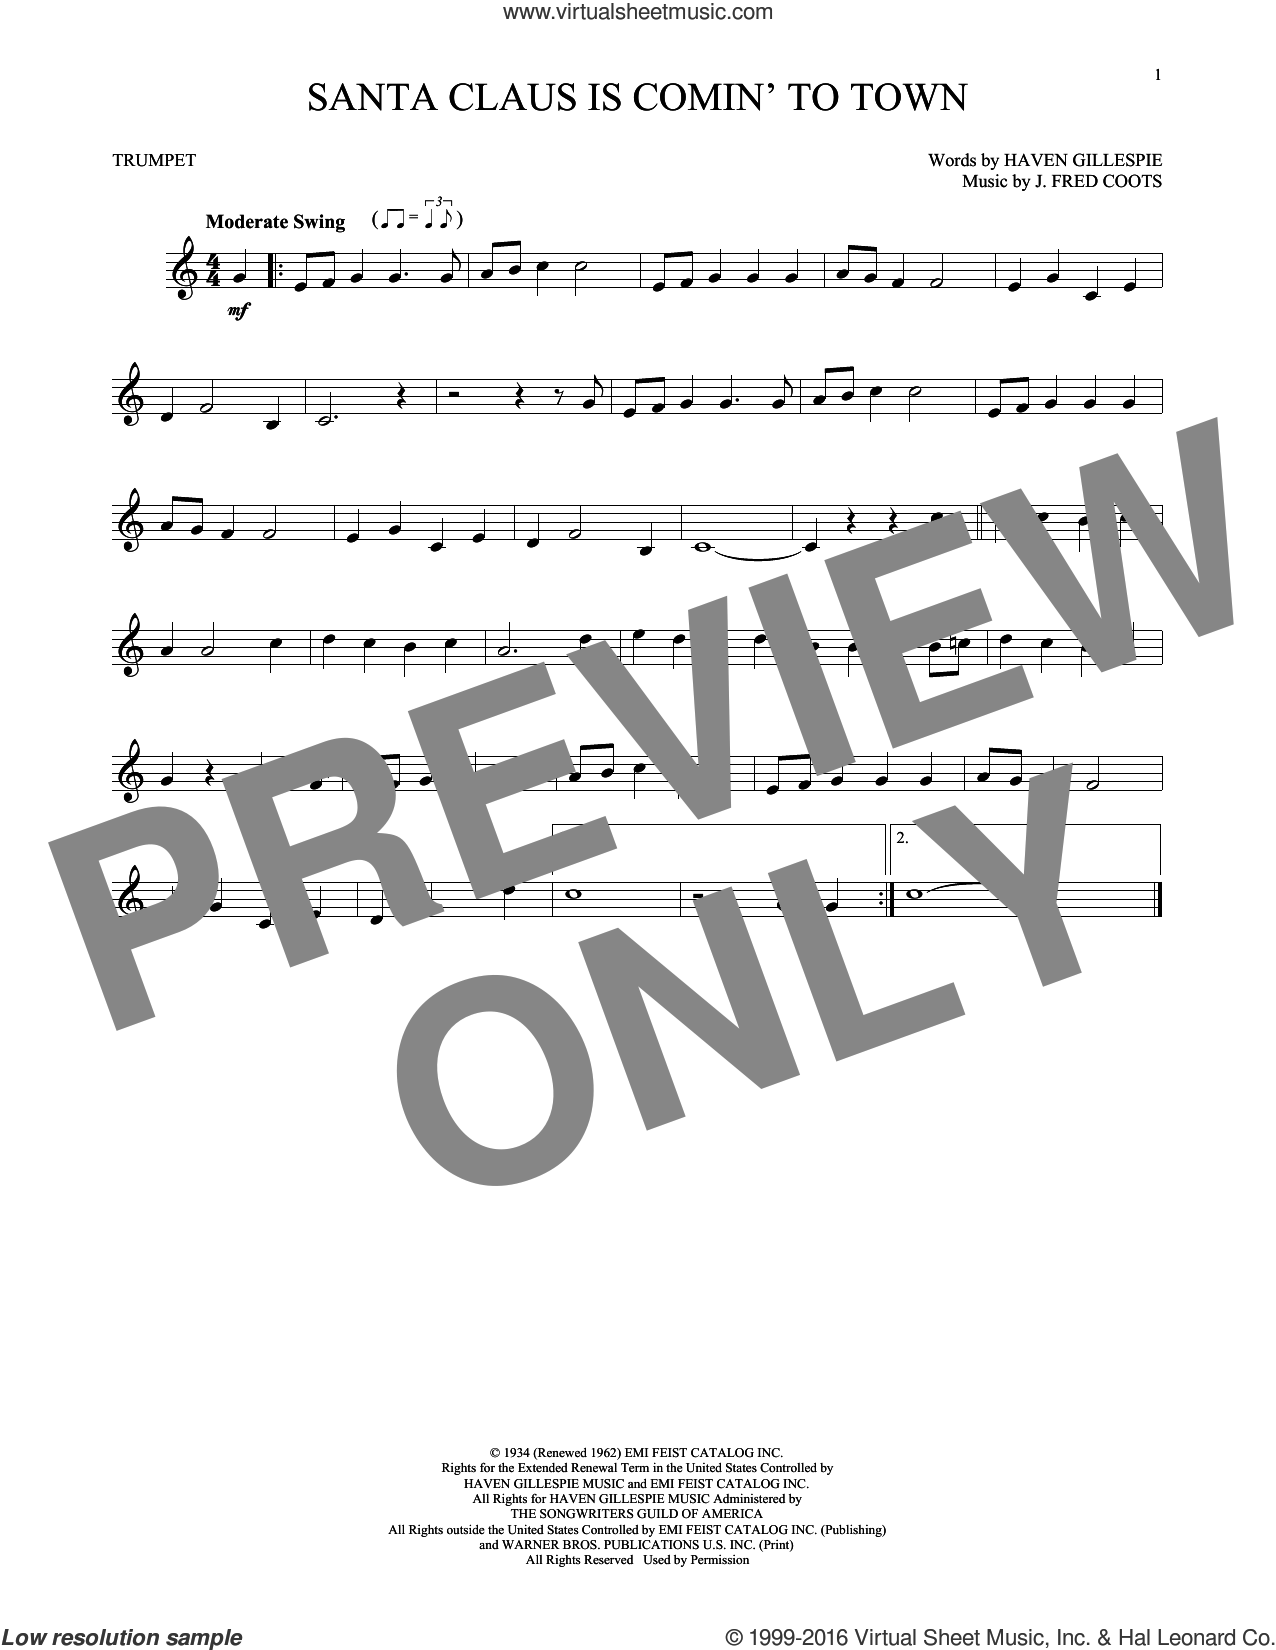 Santa Claus Is Comin' To Town sheet music for trumpet solo by J. Fred Coots and Haven Gillespie, intermediate